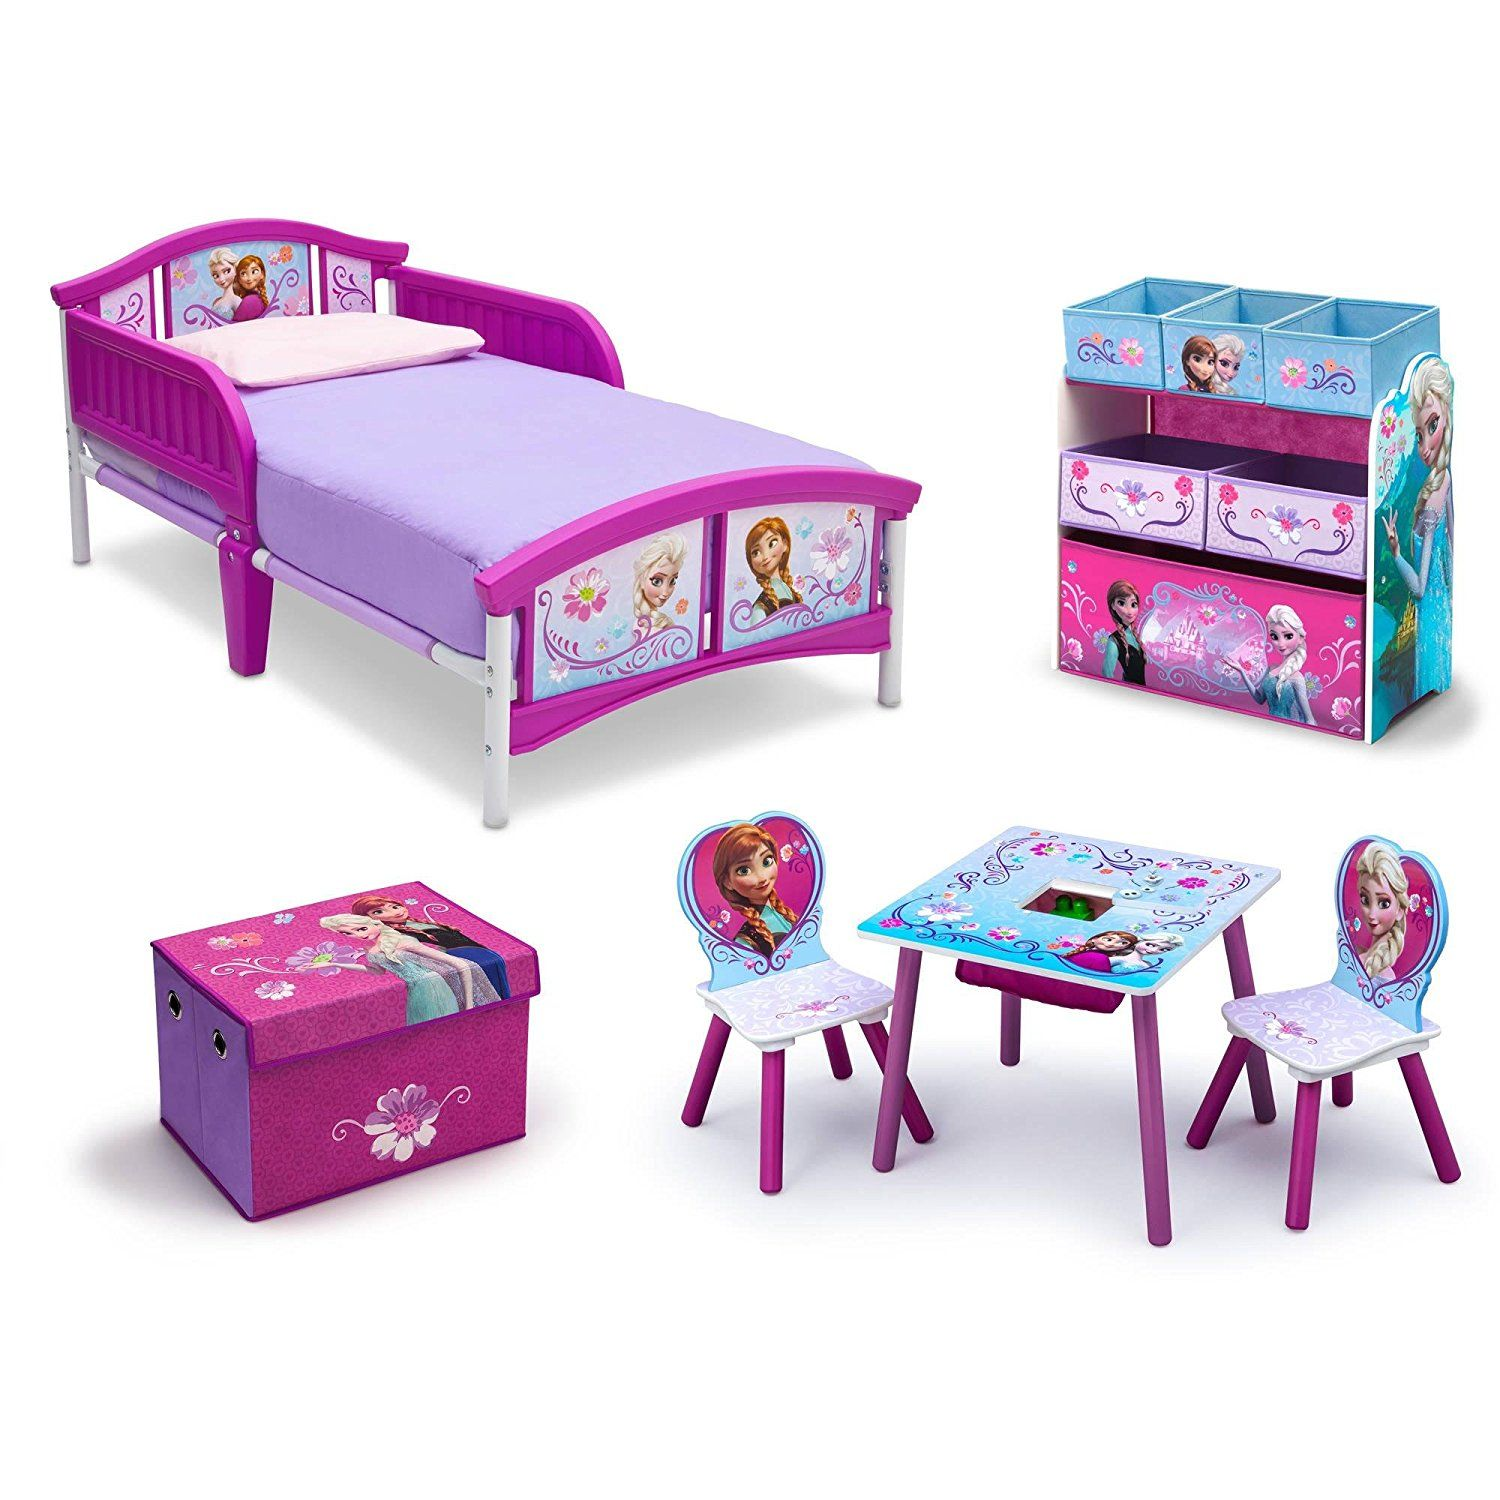 Barbie Badezimmer Set Barbie Gloria Puppenhaus Möbel Schlafzimmer Set Barbie